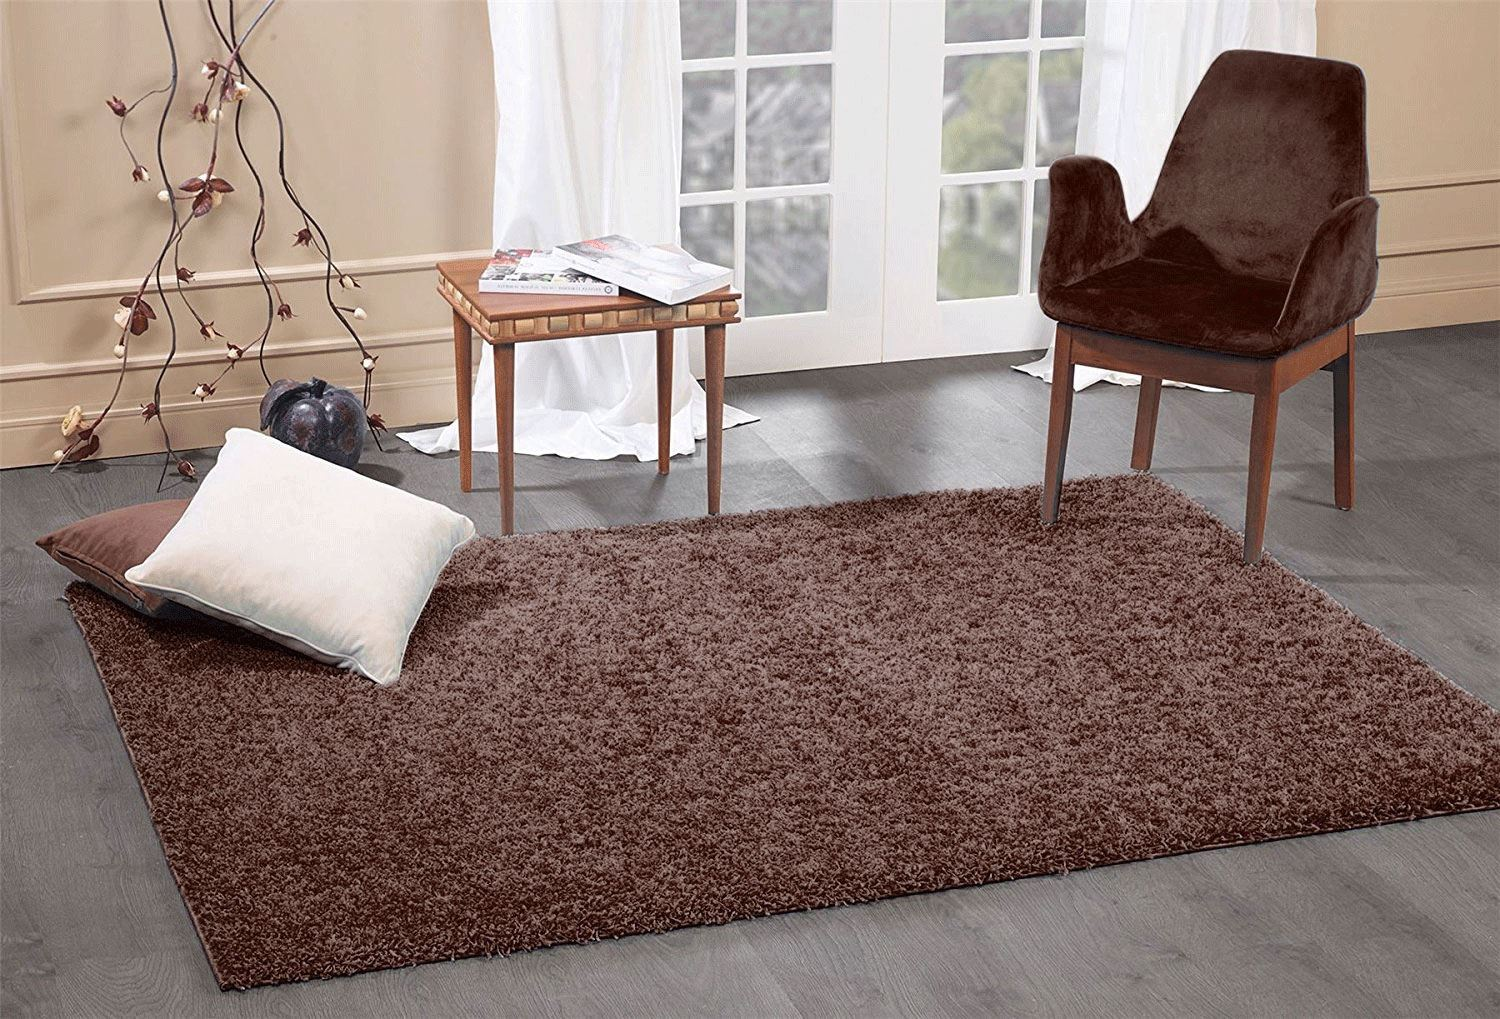 Details About A2z Brown Fluffy Shaggy Rugs Shabby Chic Living Room Floor Area Carpet 5cm Thick